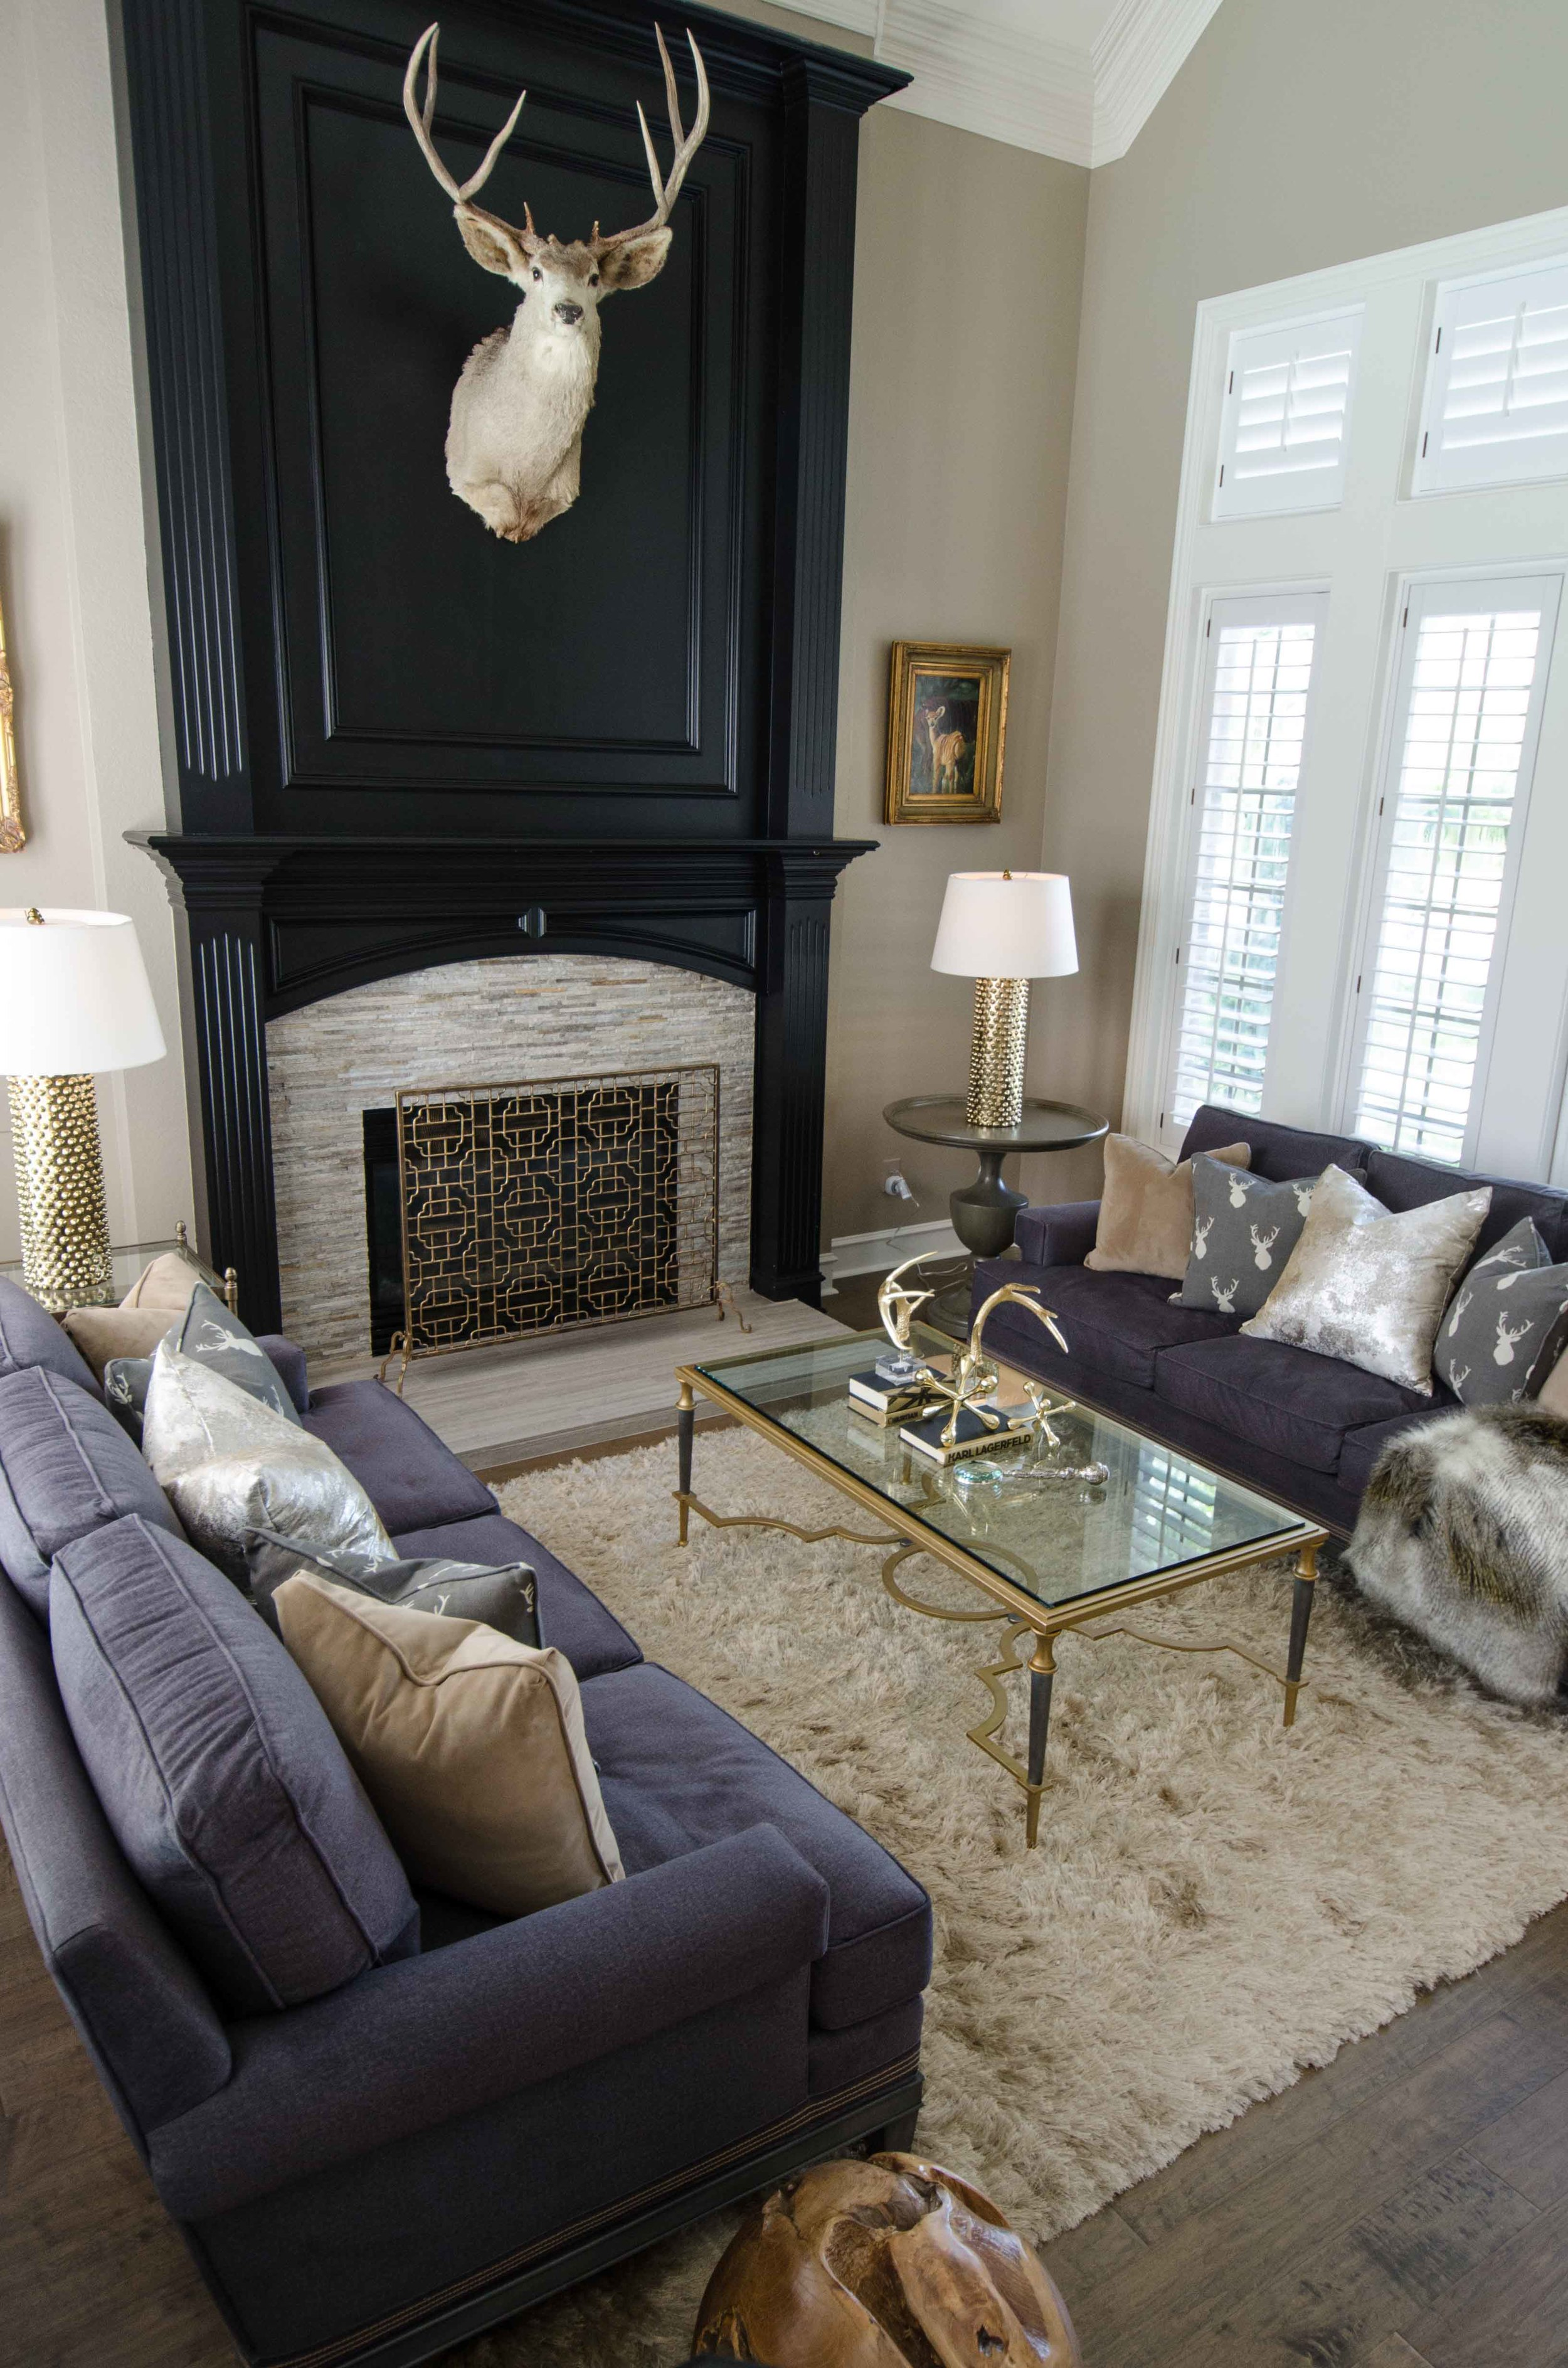 Dark sofas and fireplace with a lot of natural light